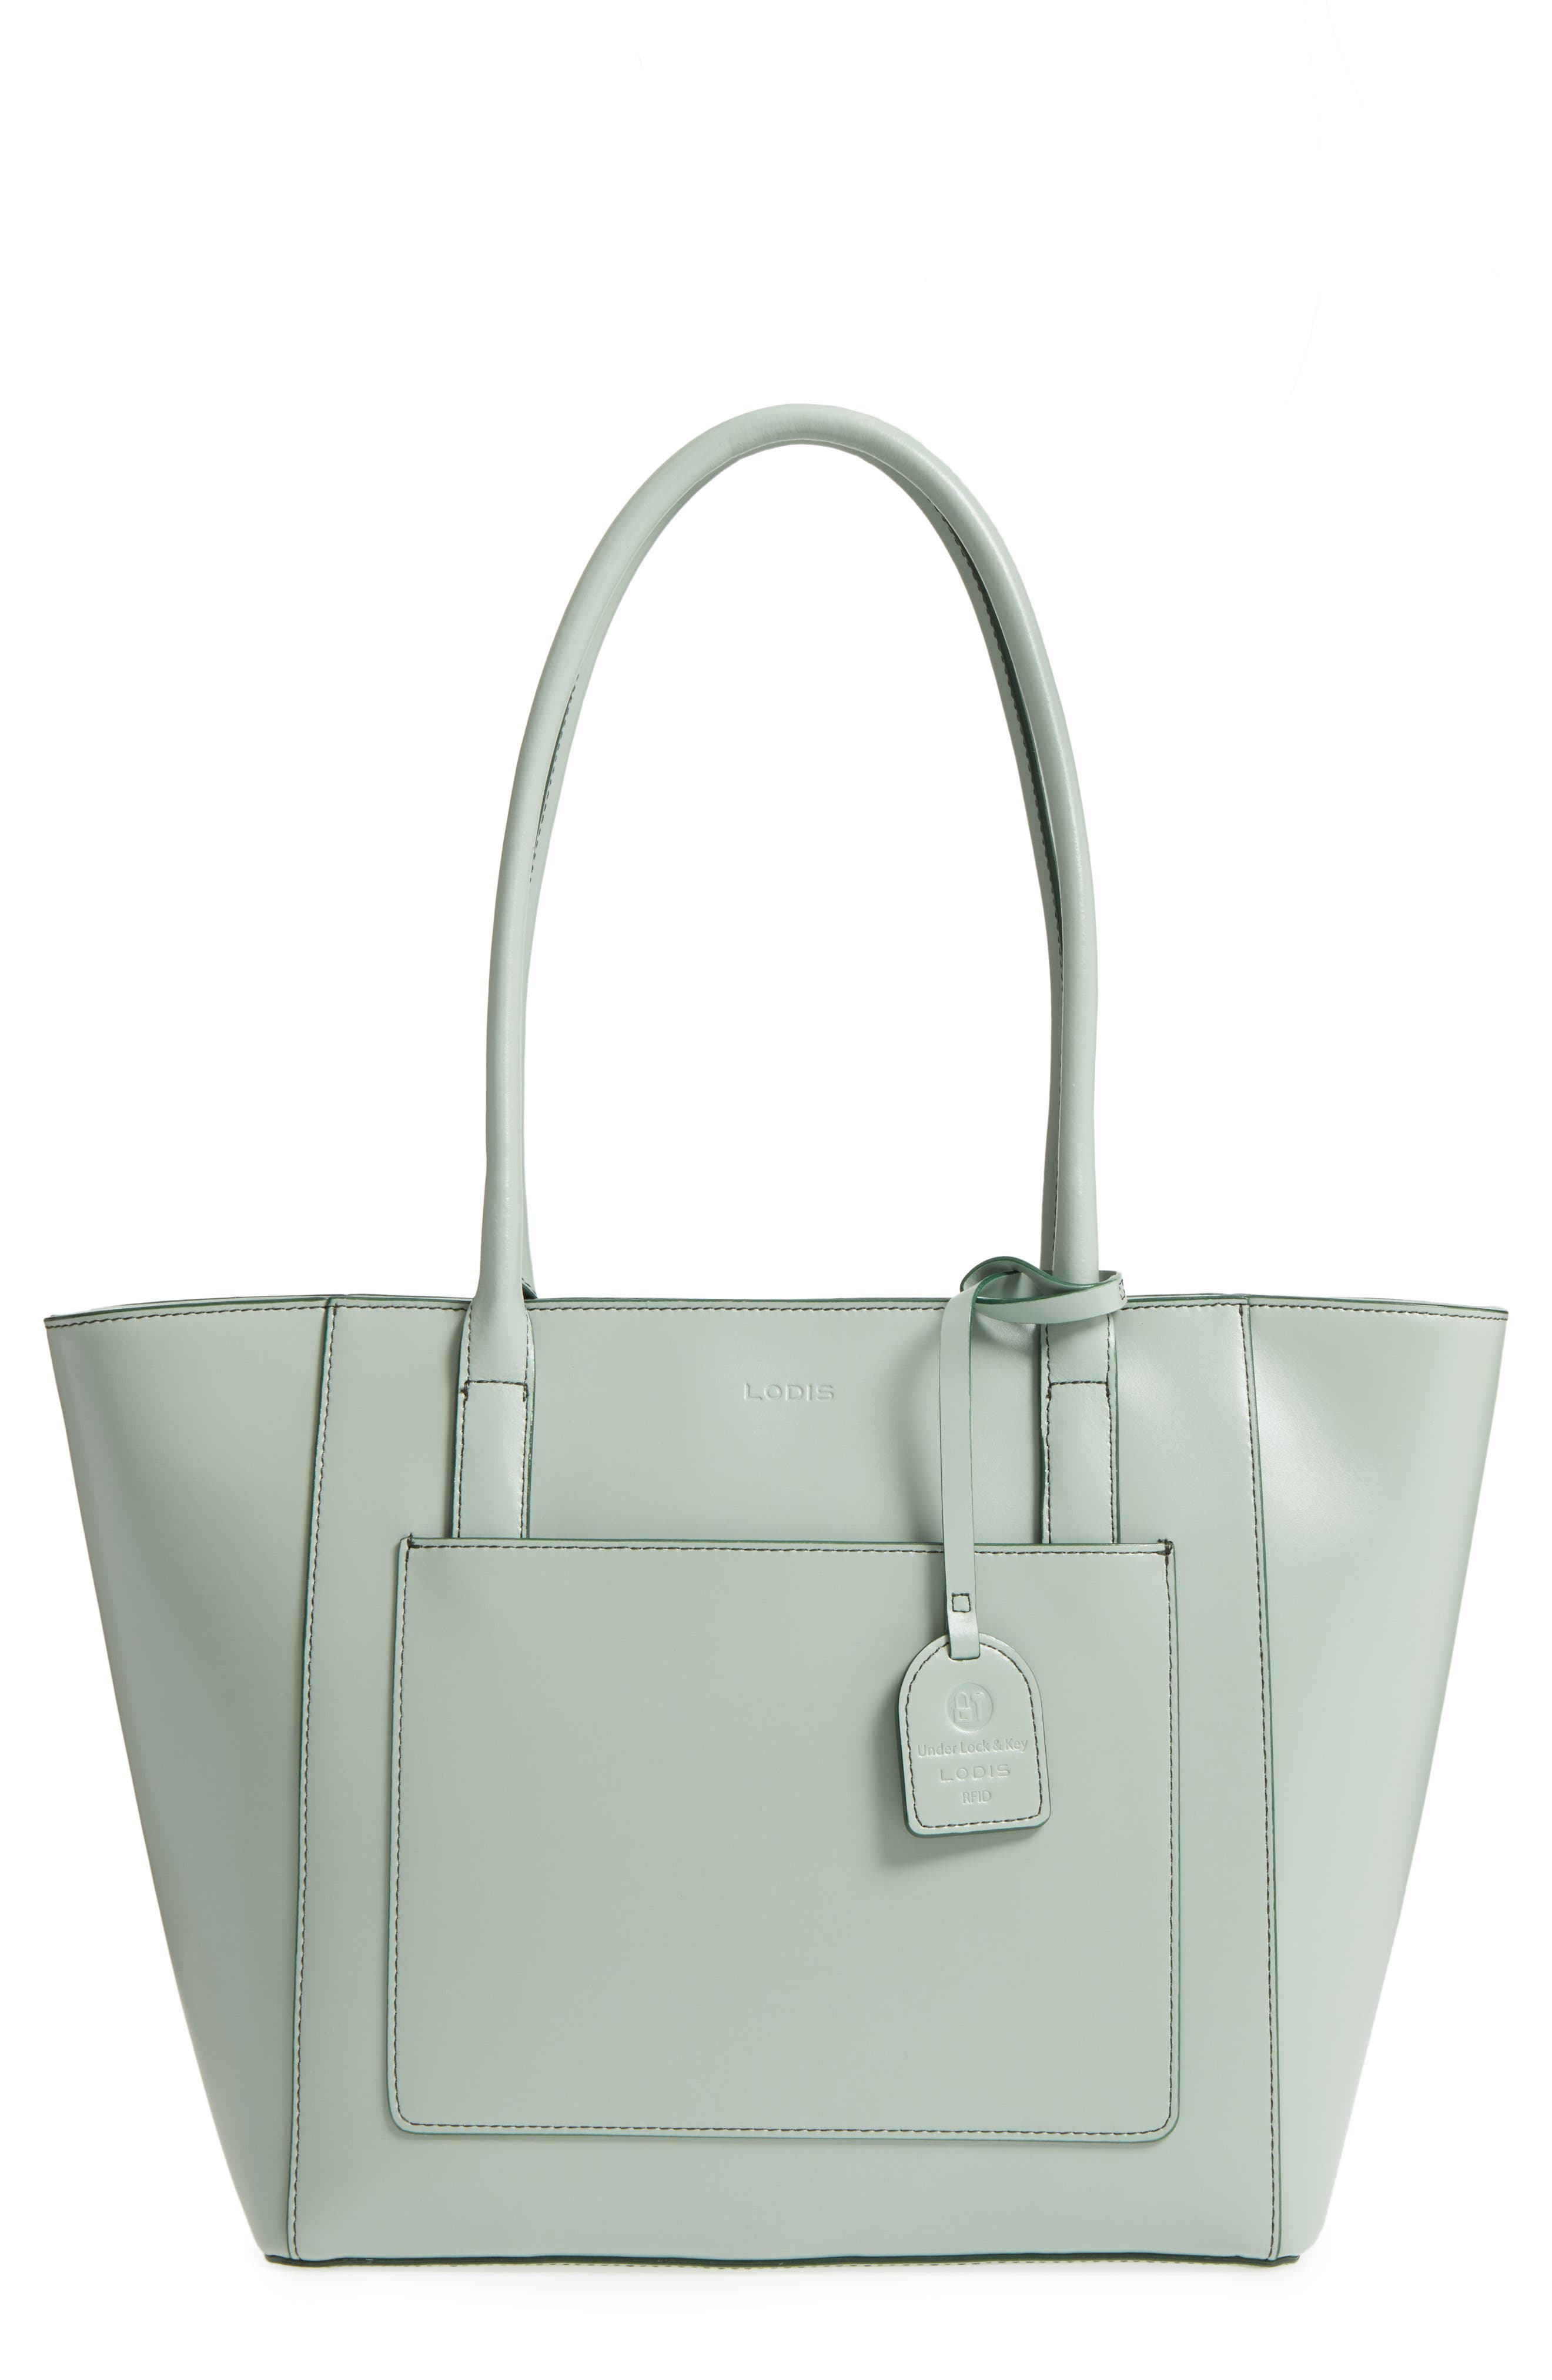 Main Image - Lodis Audrey Under Lock & Key - Medium Margaret RFID Leather Tote with Zip Pouch